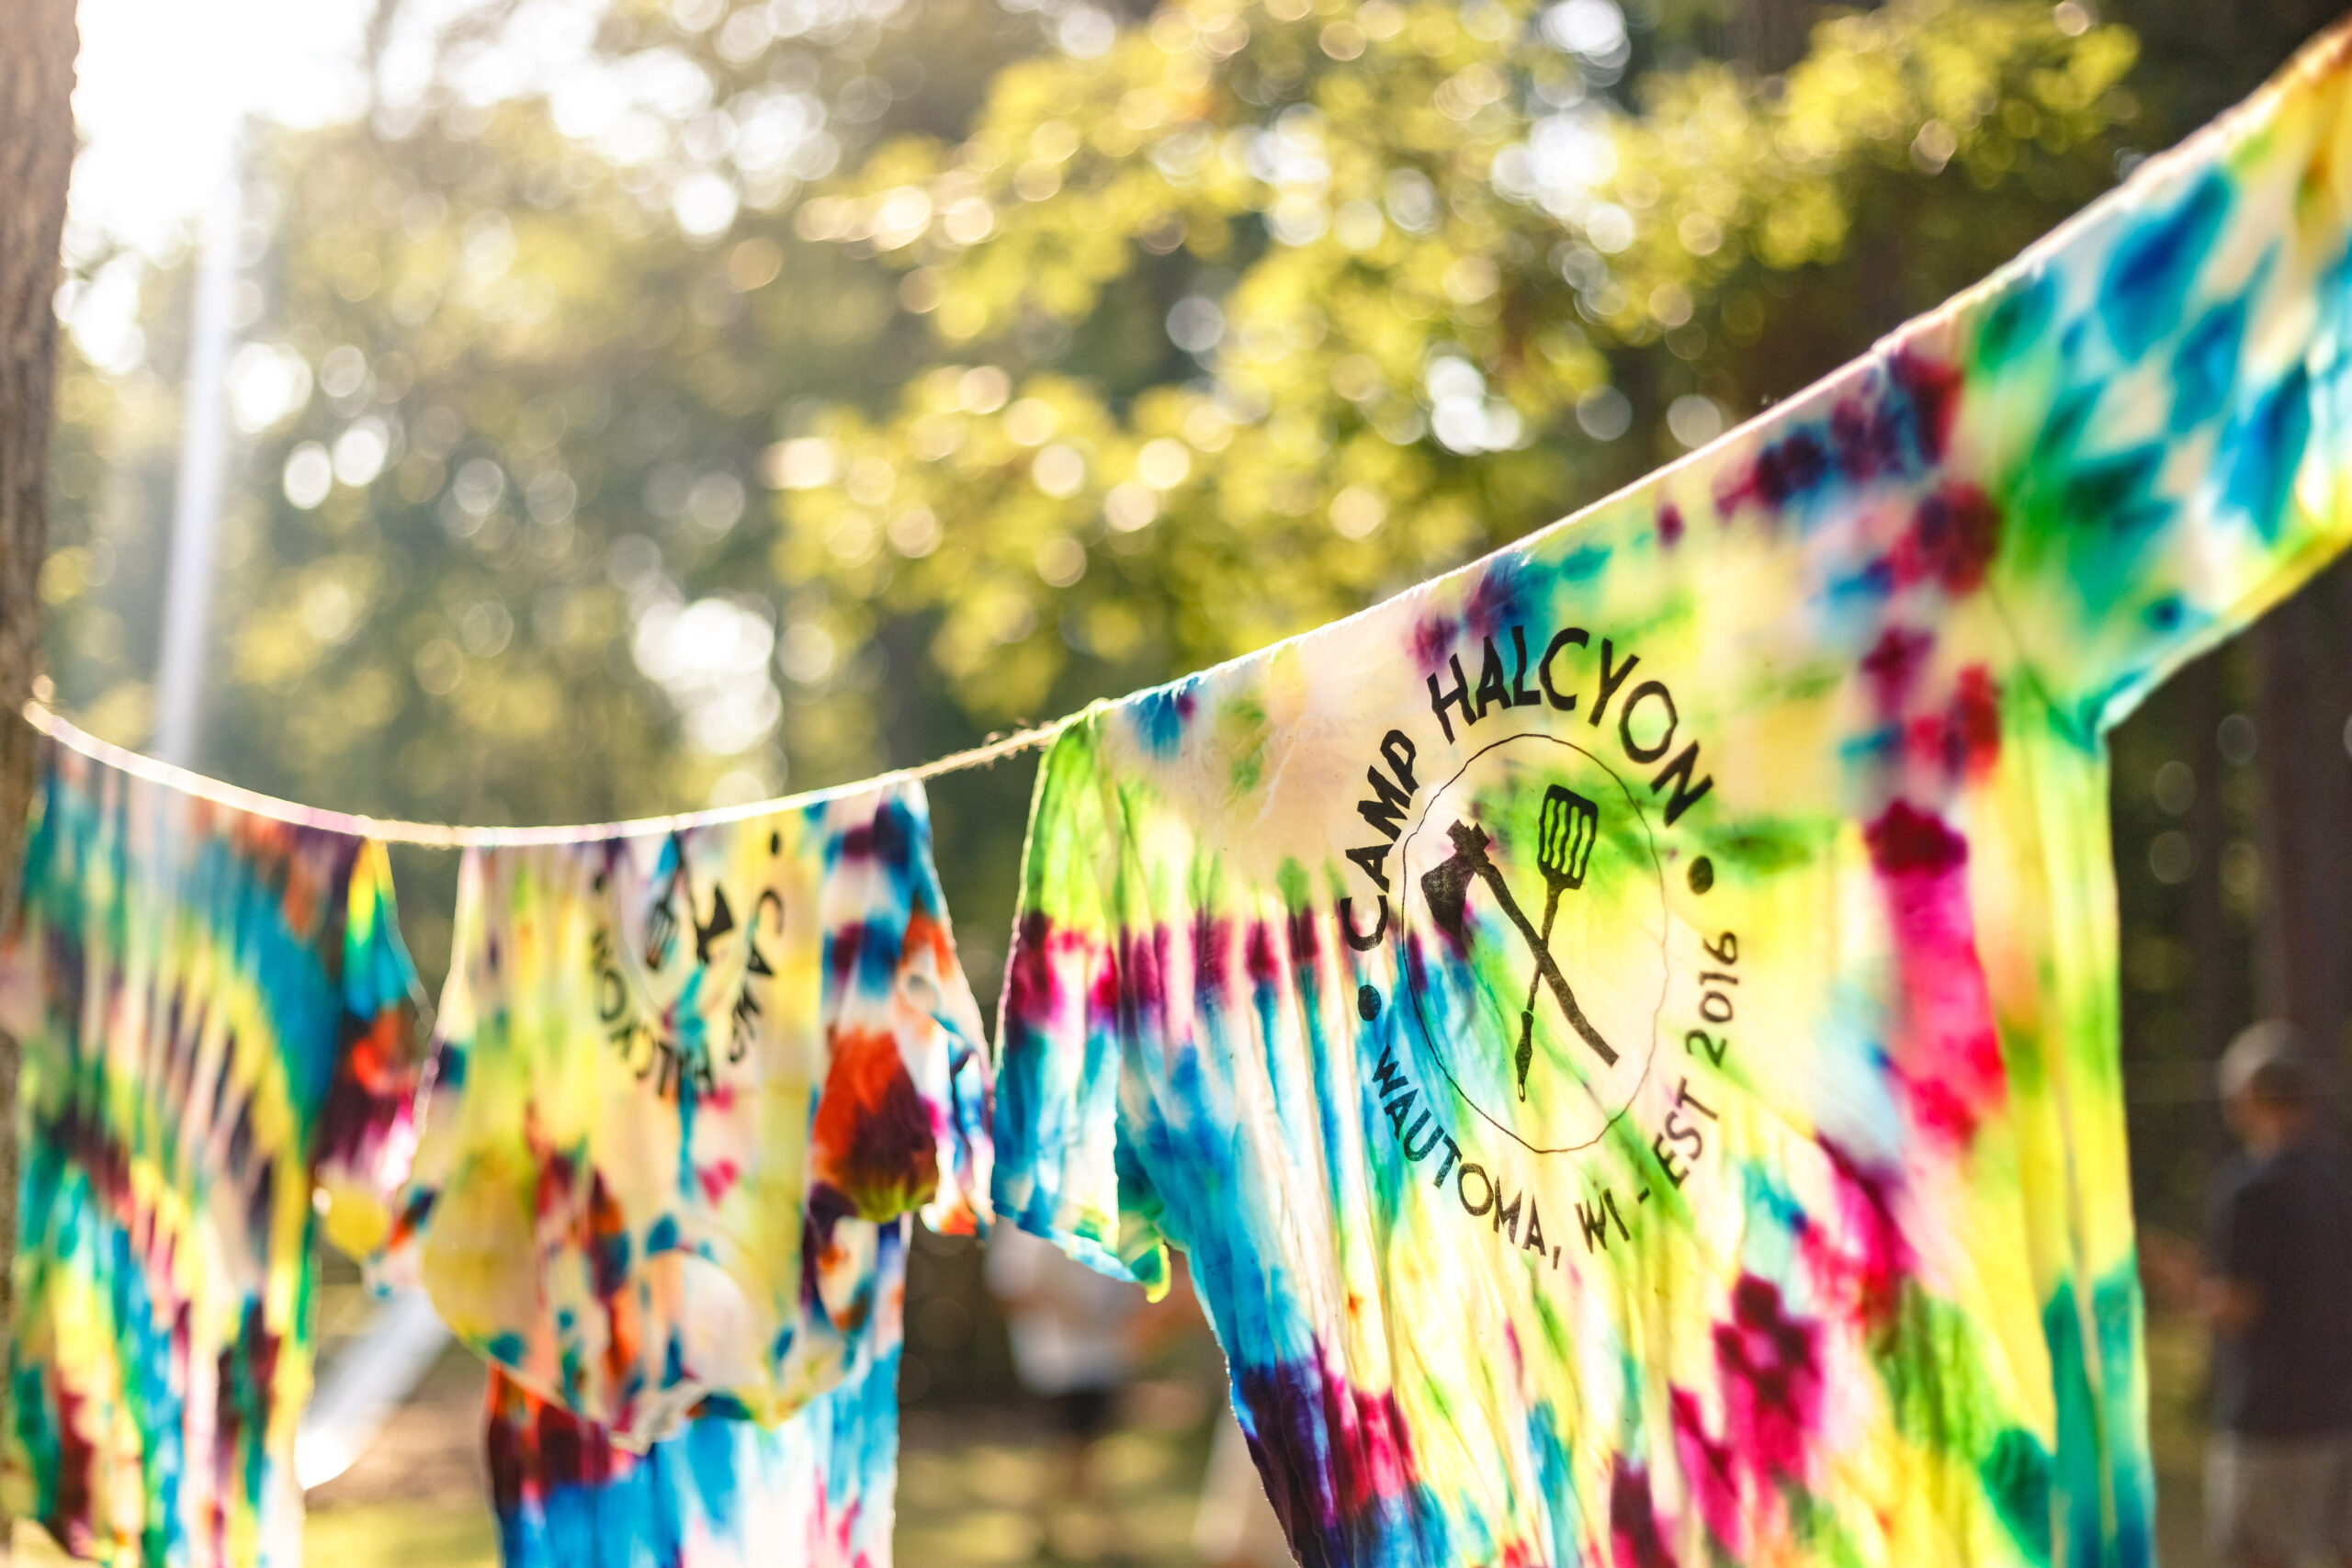 Tie dye t-shirts at Camp Halcyon